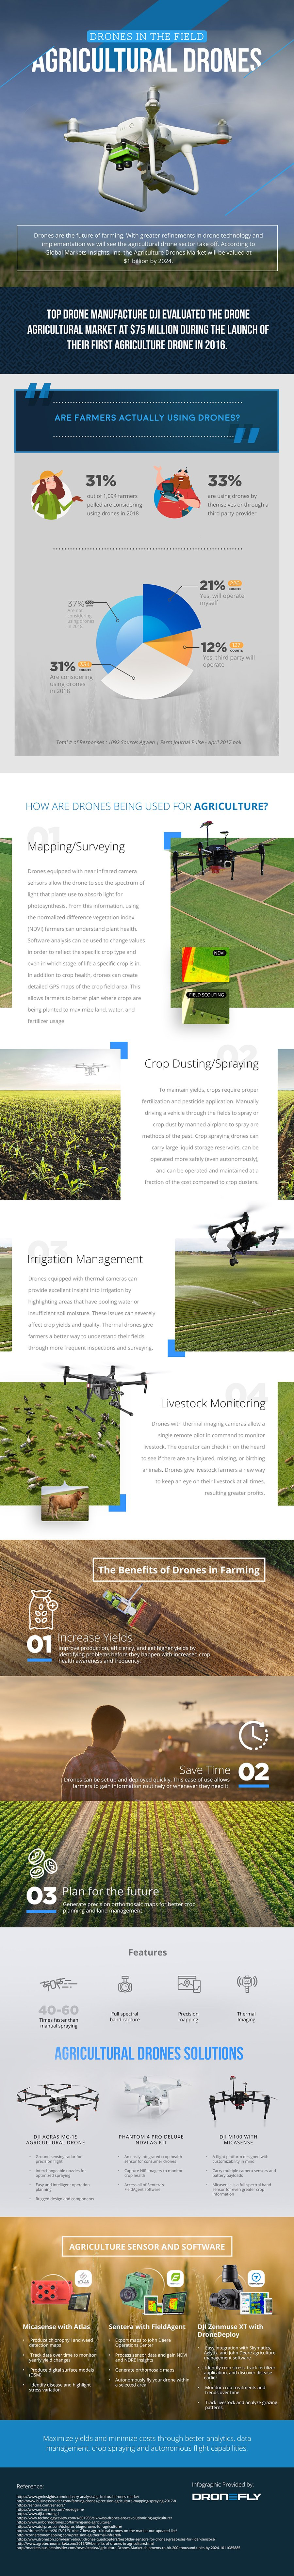 Infographic - Agriculture Drones